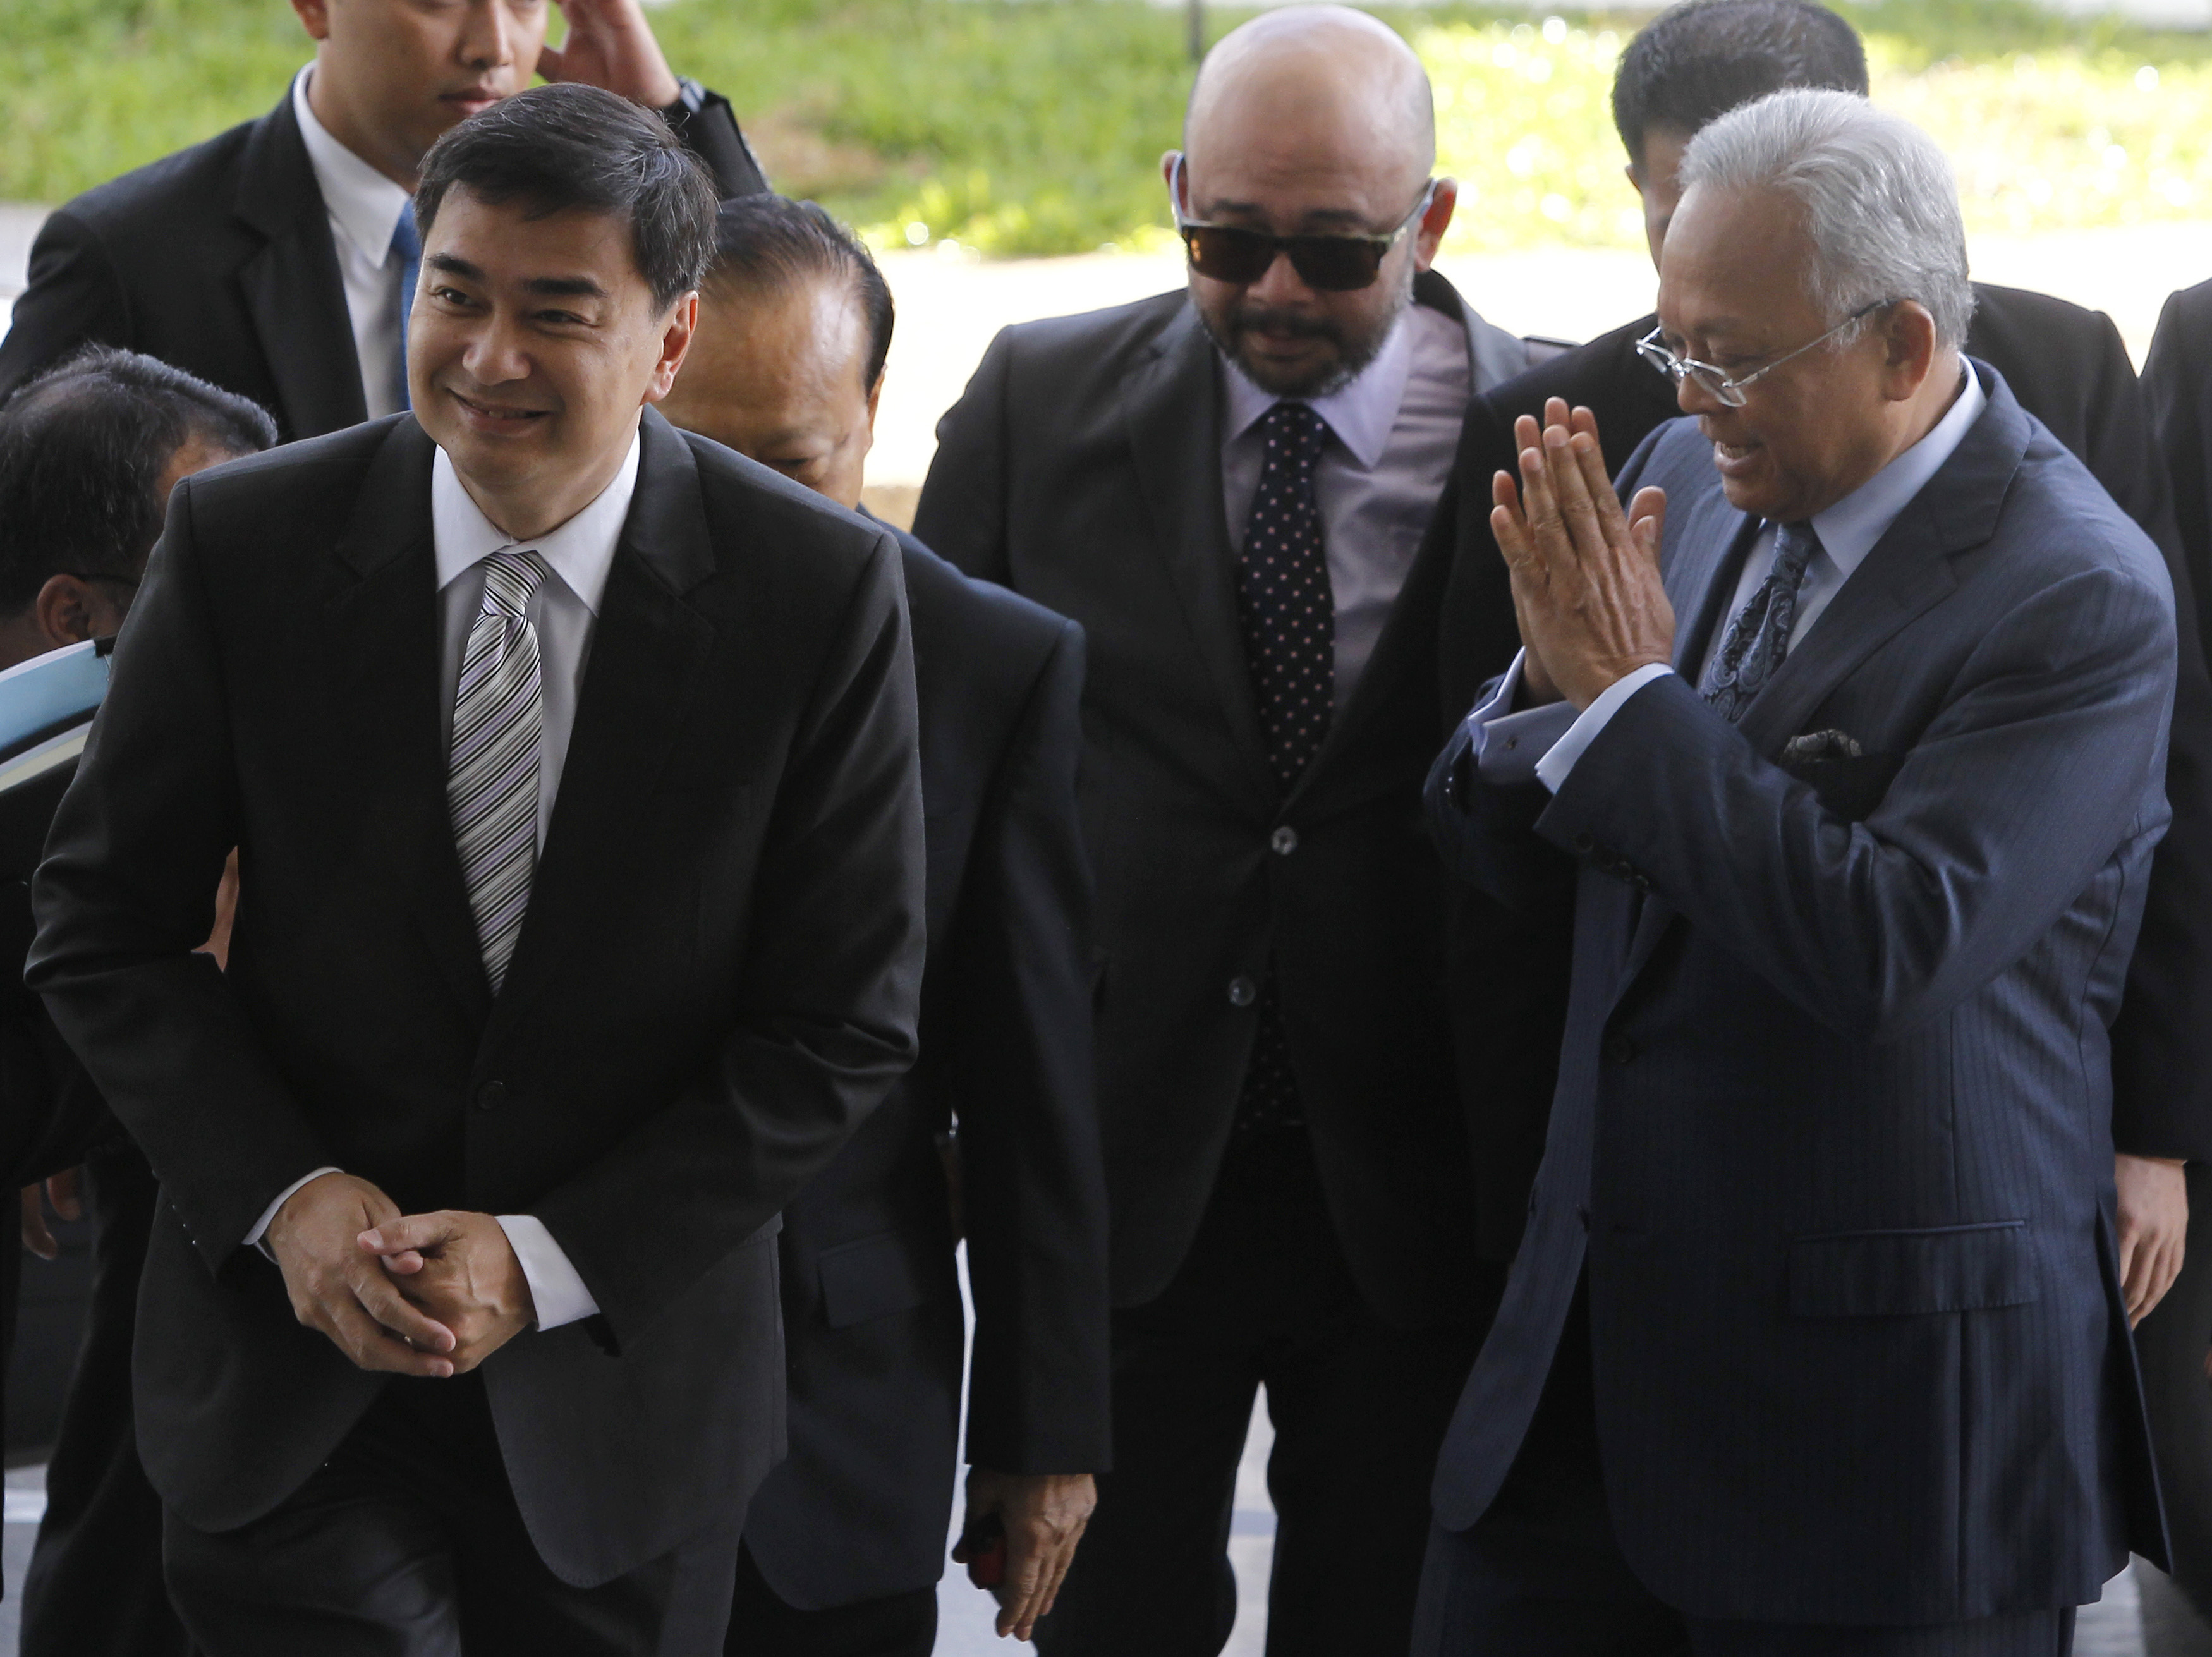 Former Thai Prime Minister Abhisit Vejjajiva, left, and his then deputy Suthep Thaugsuban arrive at the Department of Special Investigation in Bangkok on May 14, 2013.